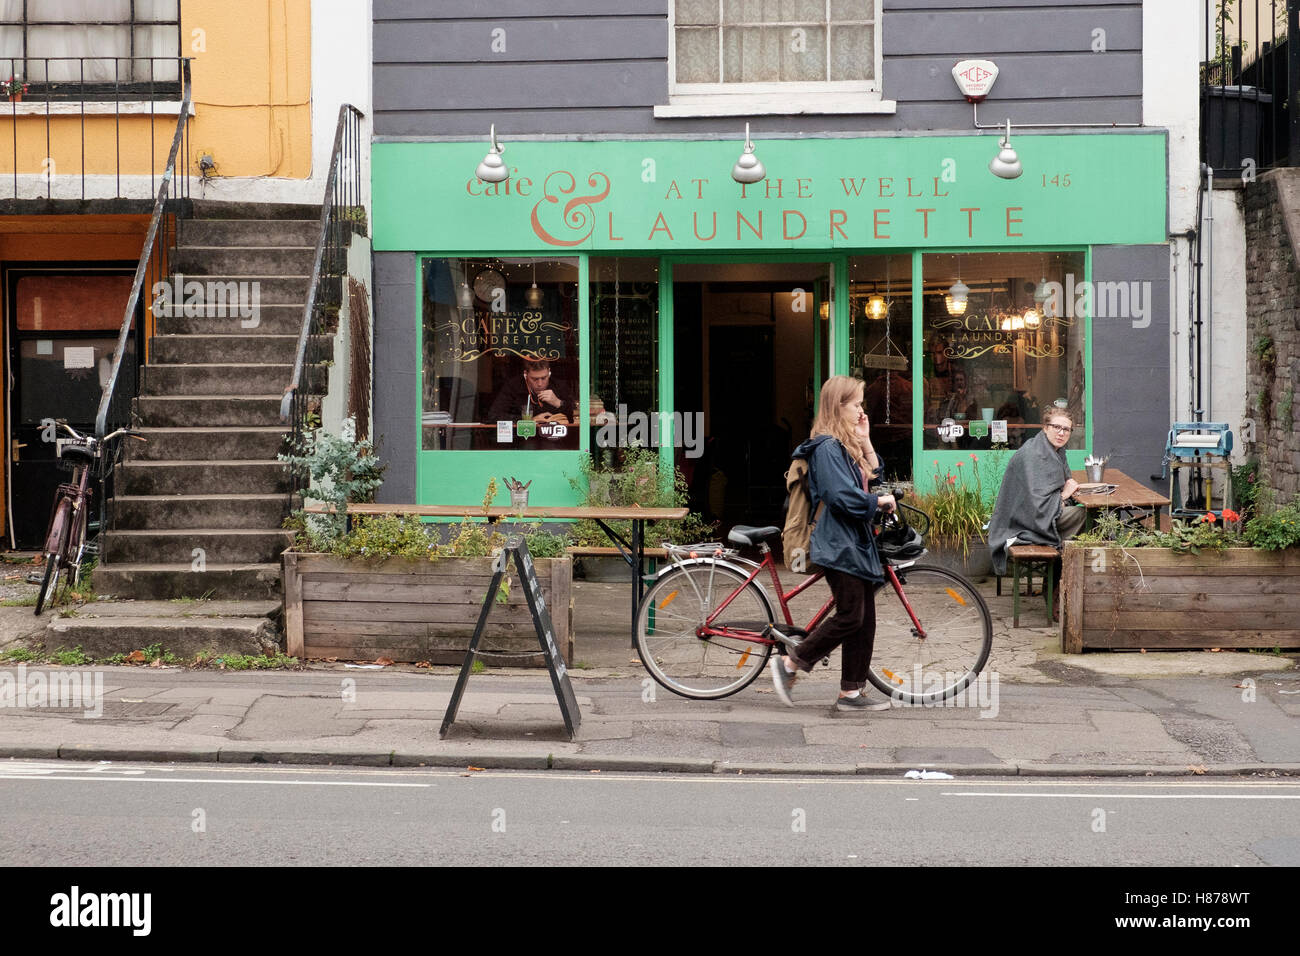 Cafe at the Well Laundrette - a successful independent business on Cheltenham Road, Bristol - Stock Image